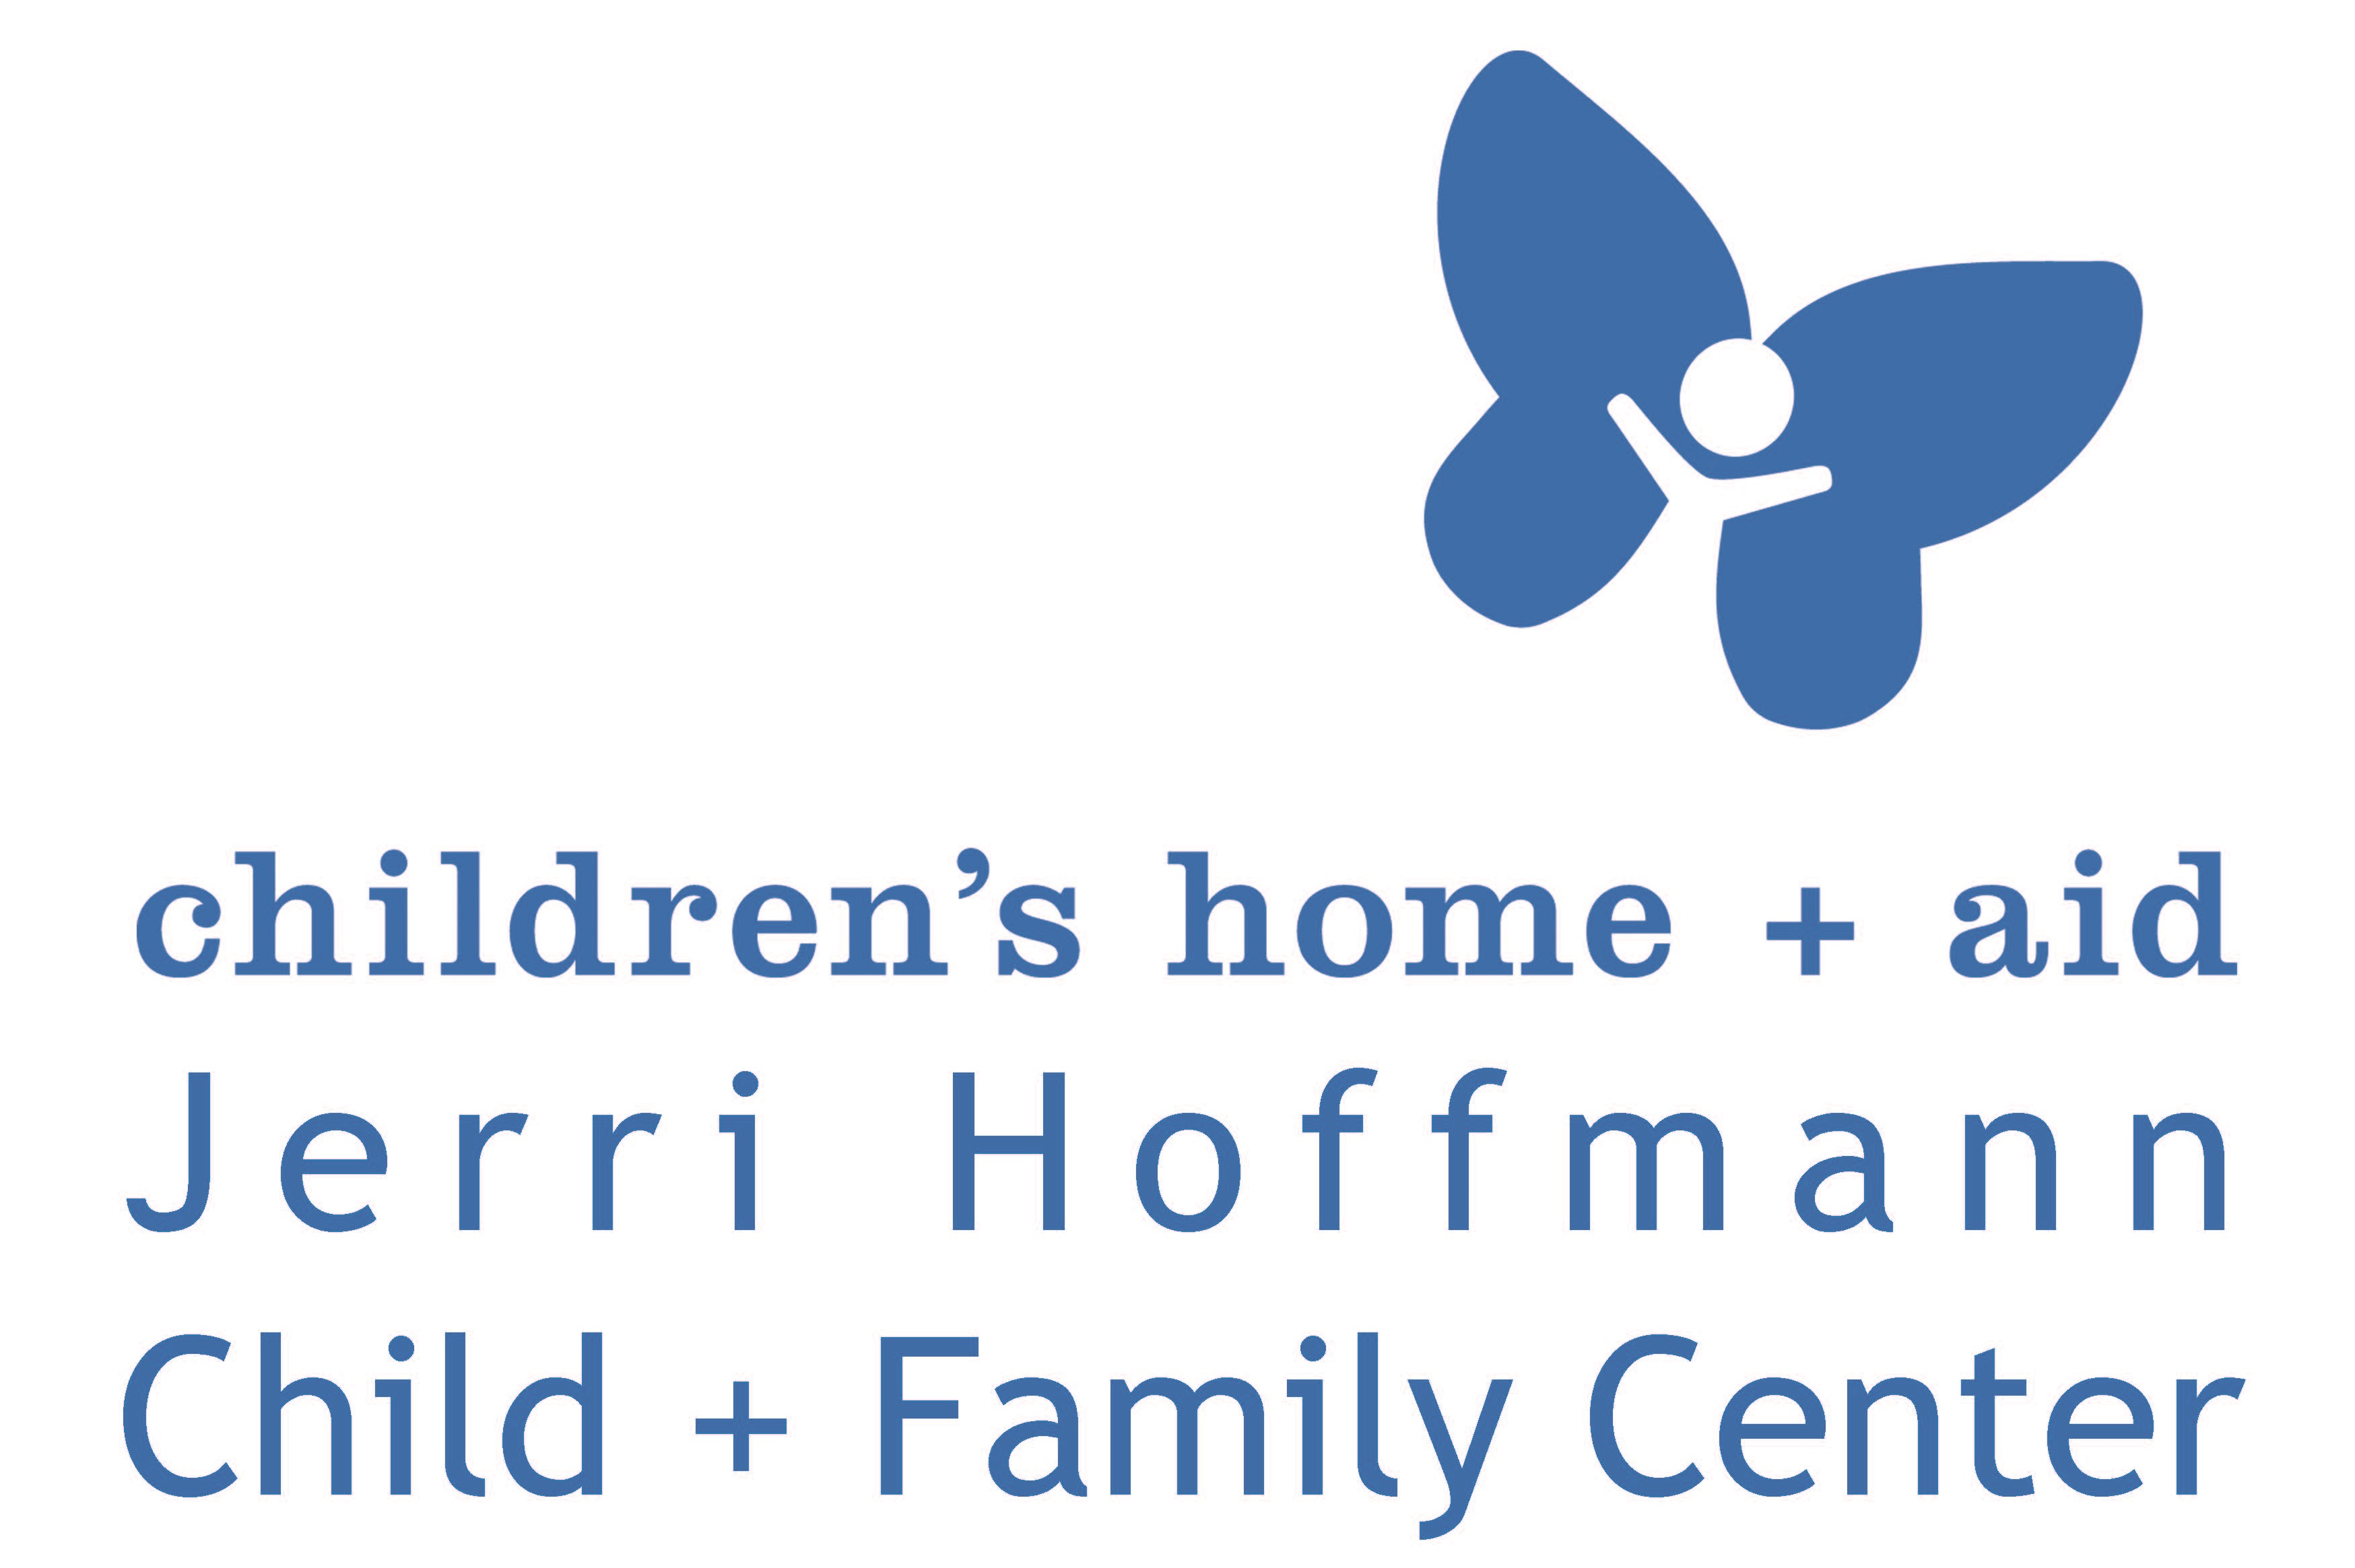 Jerri Hoffmann Child + Family Center